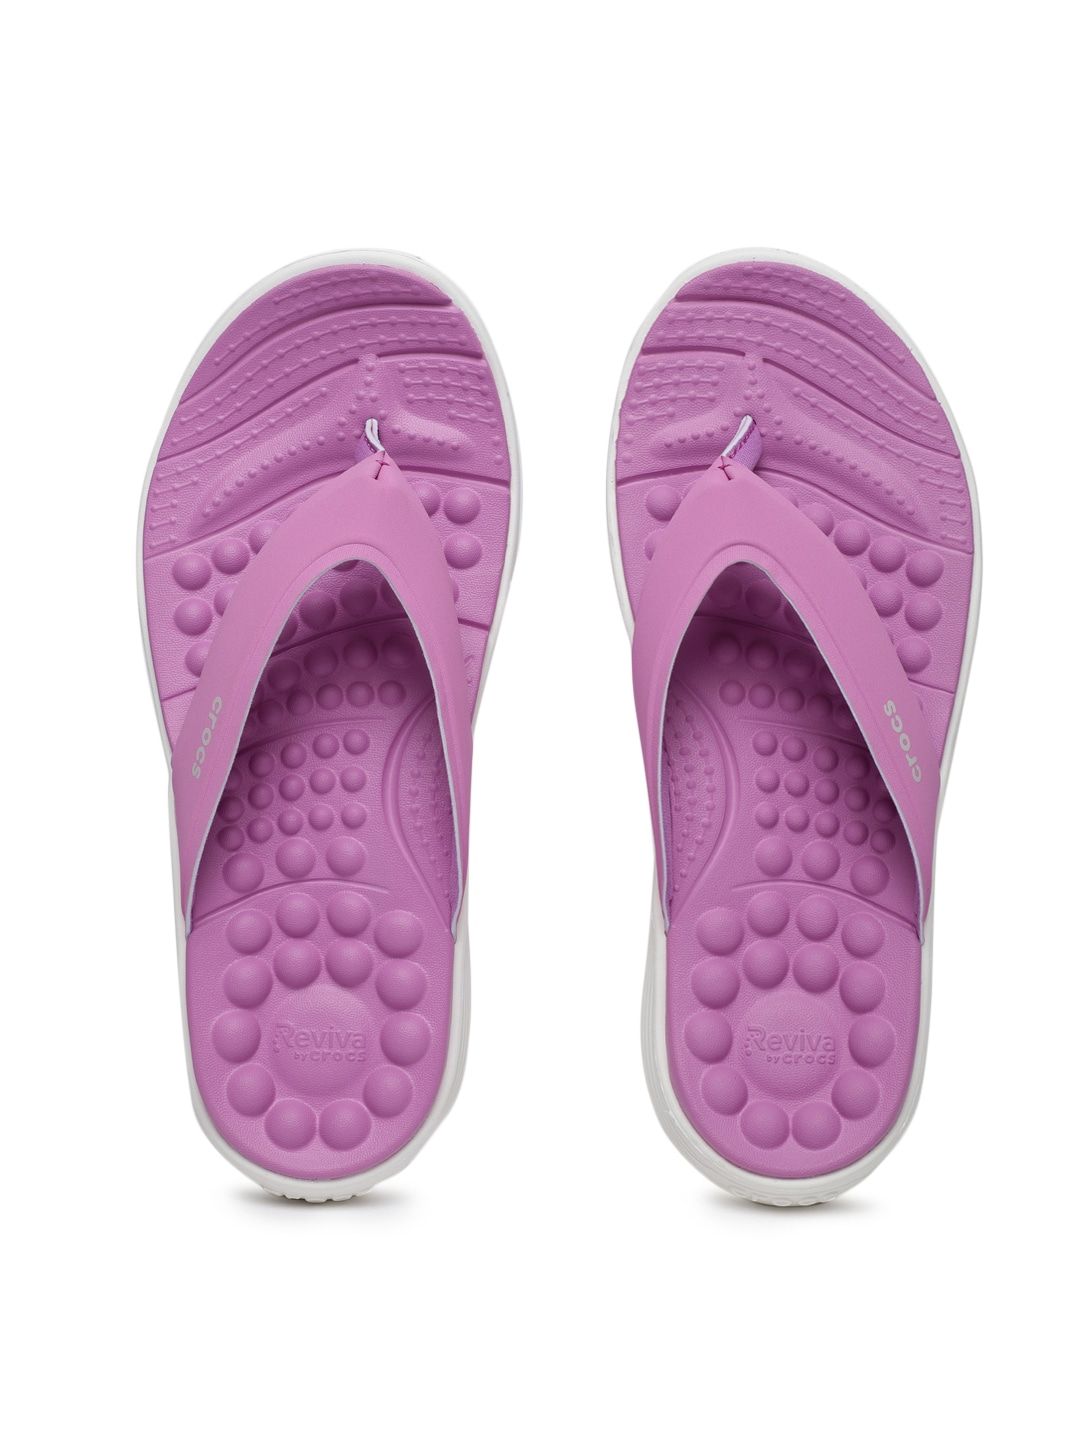 d8c7577b538e Crocs Shoes Online - Buy Crocs Flip Flops   Sandals Online in India - Myntra